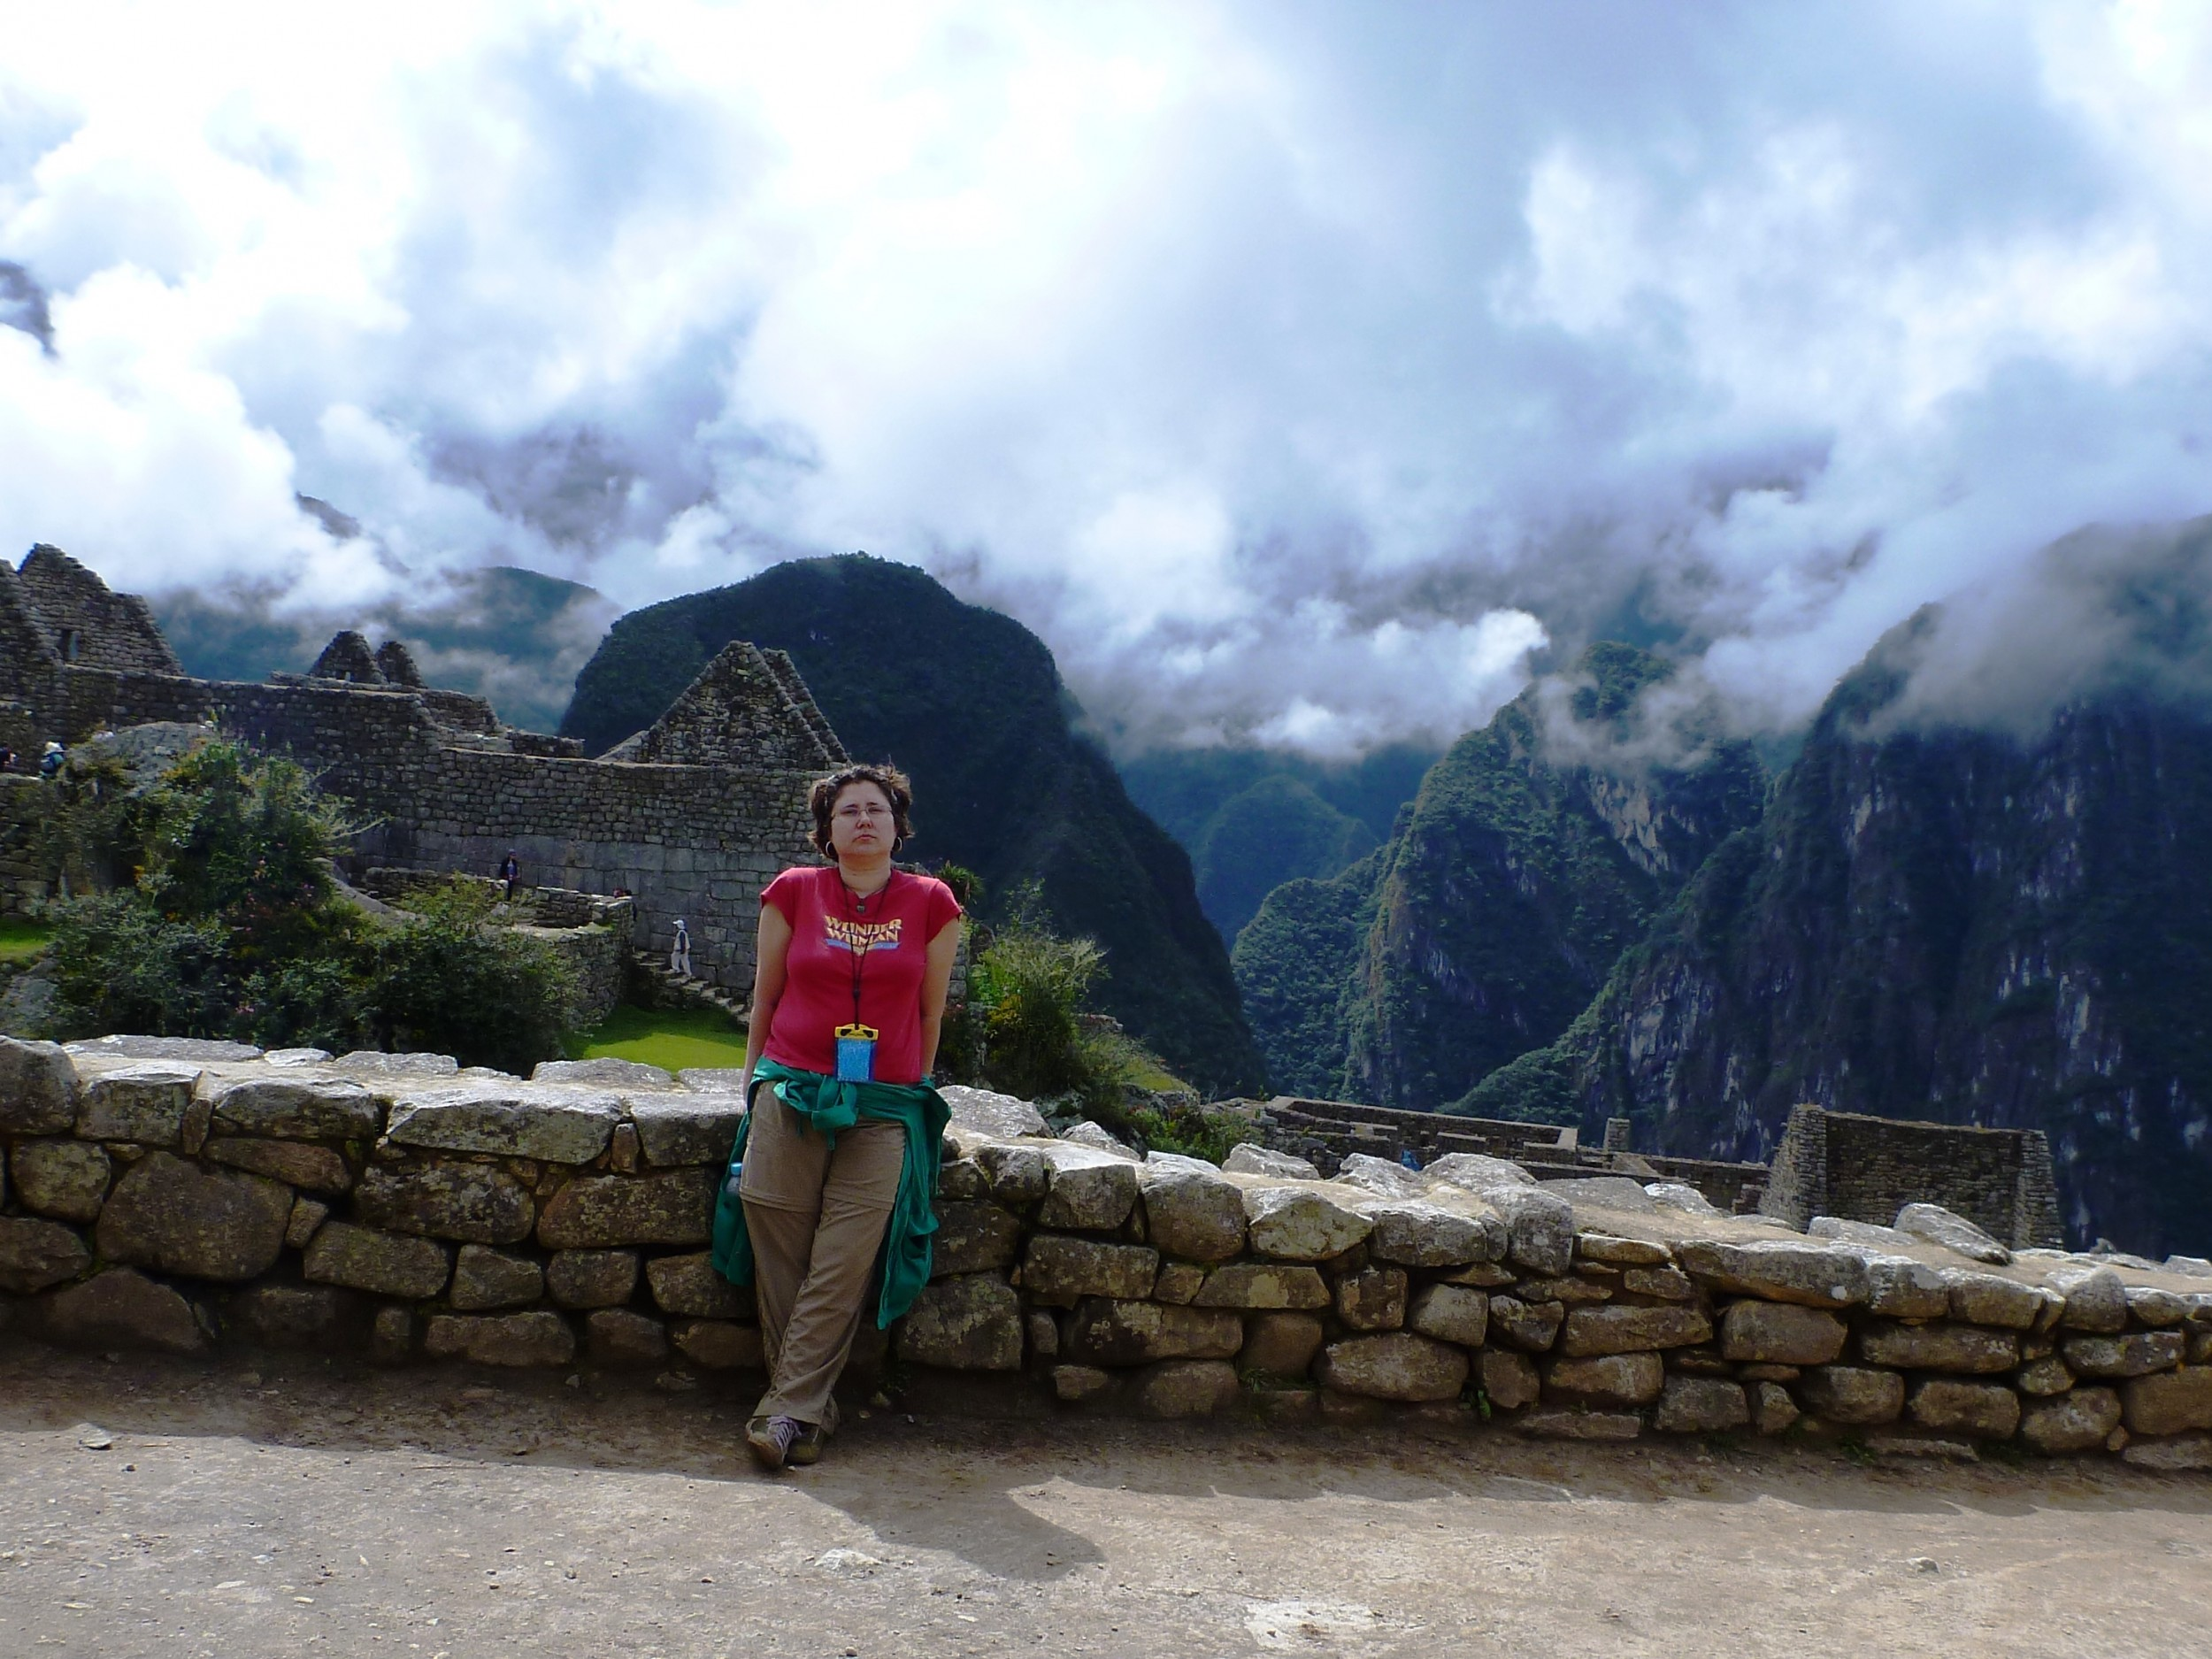 At Machu Picchu, so exhausted I had to lean on the wall when we stopped.